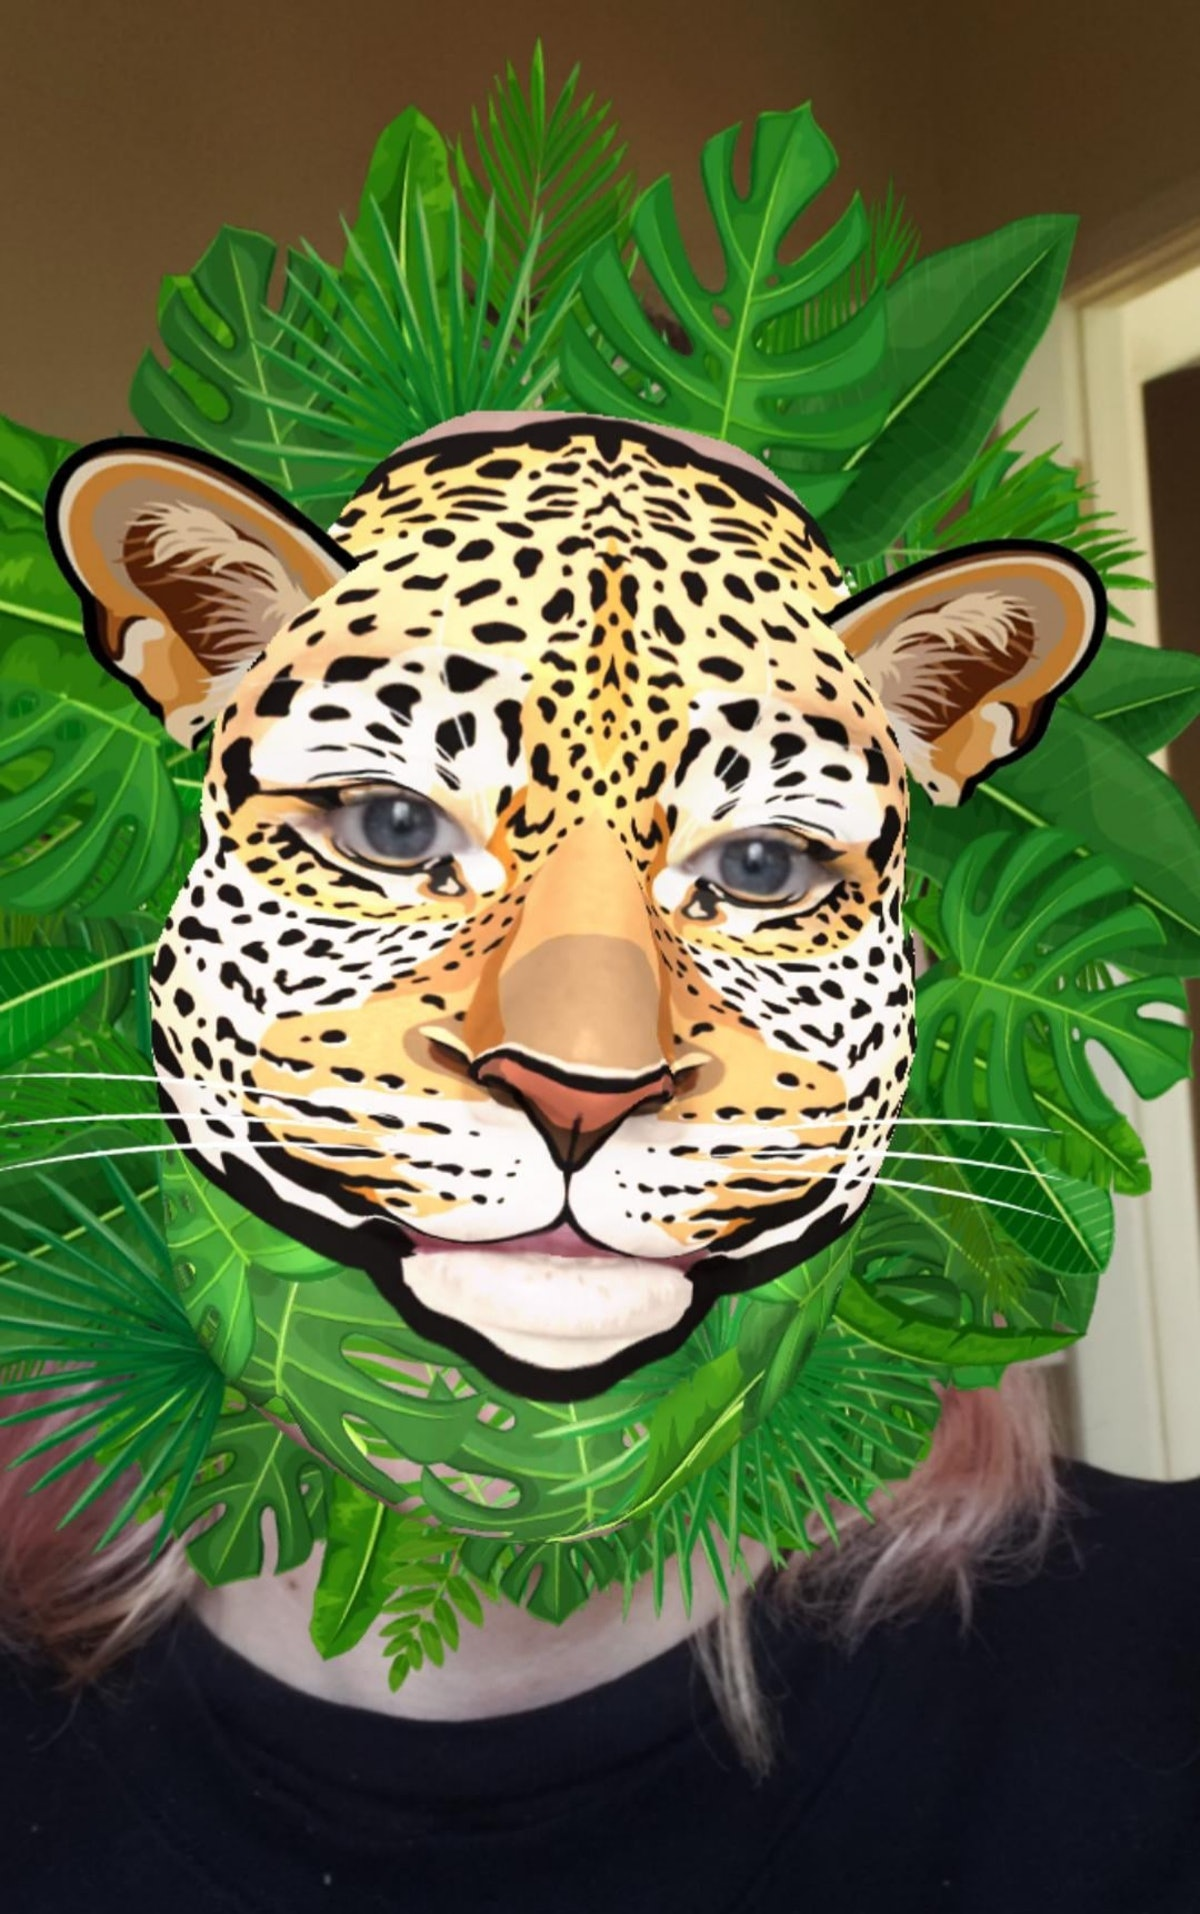 These best animal face filters on Instagram include some exotic animals.